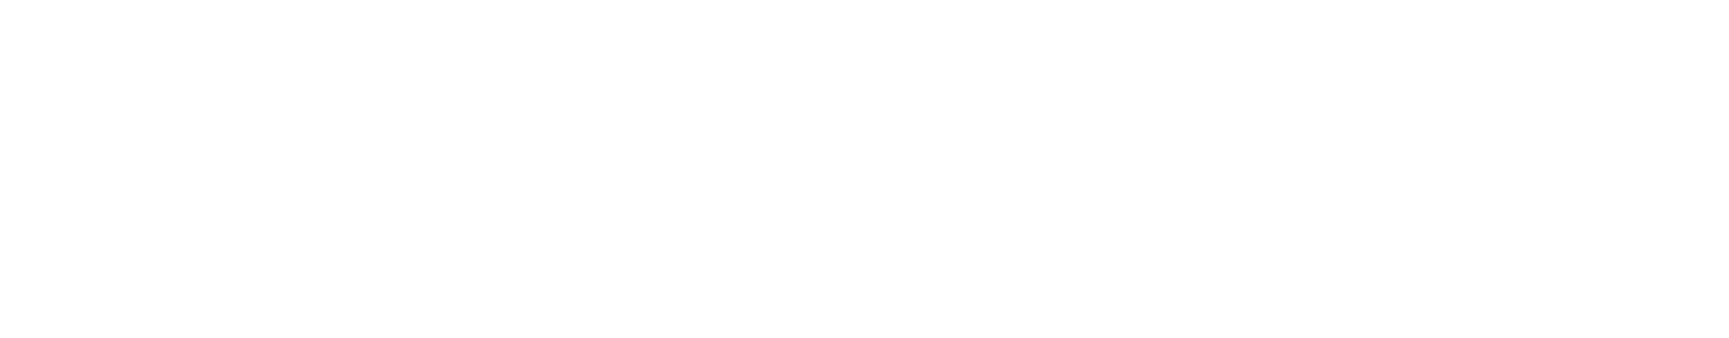 South Florida Fund for Retired Law Enforcement K-9s